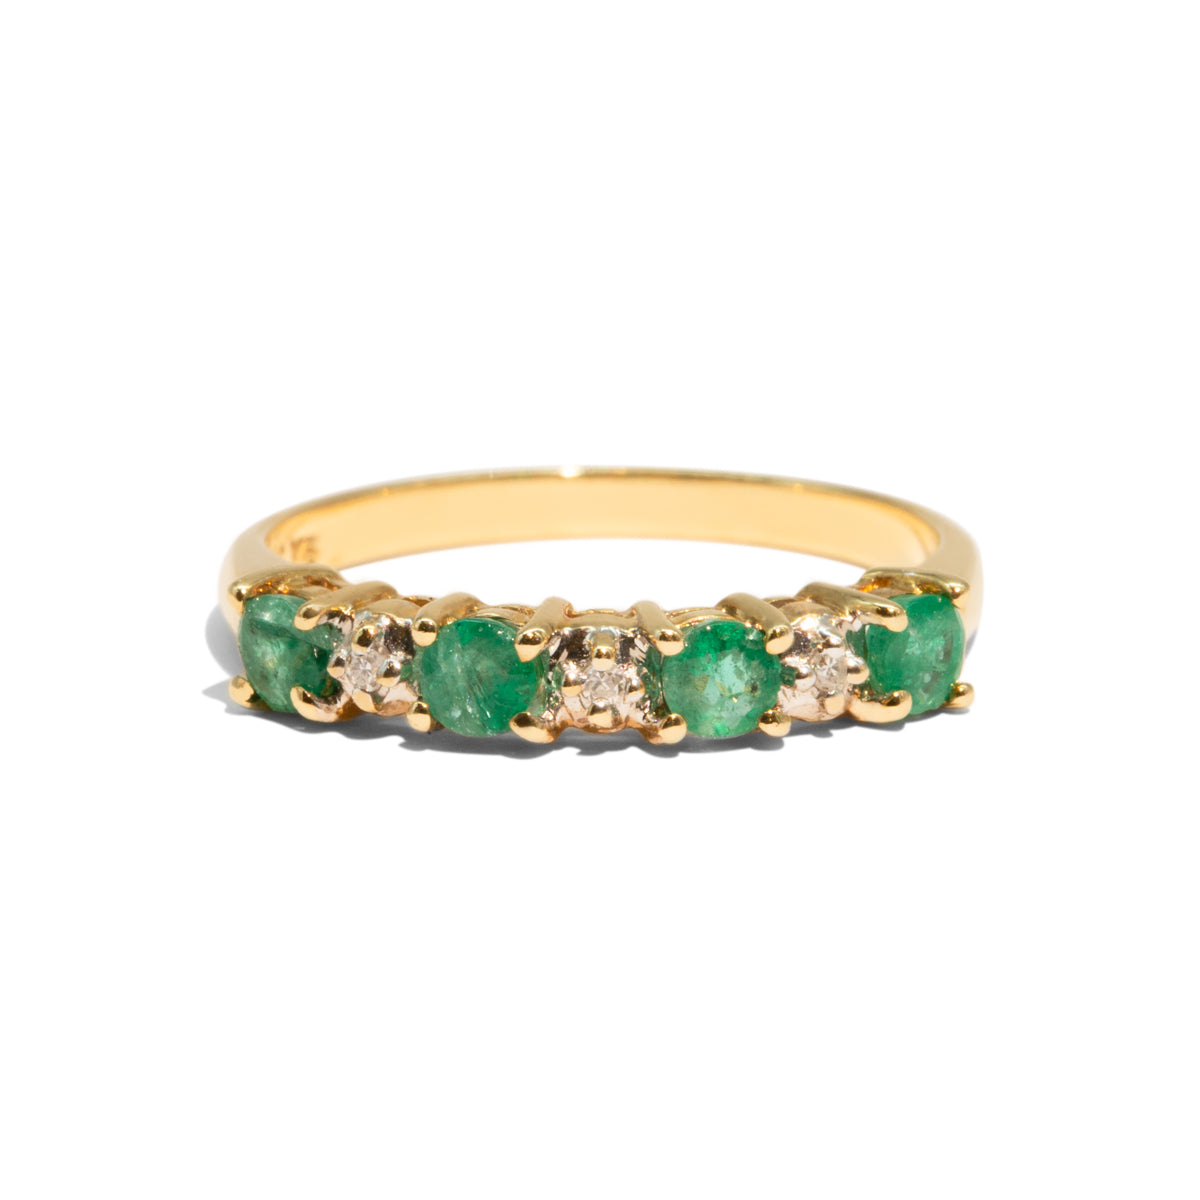 The Emily Vintage Emerald & Diamond Ring